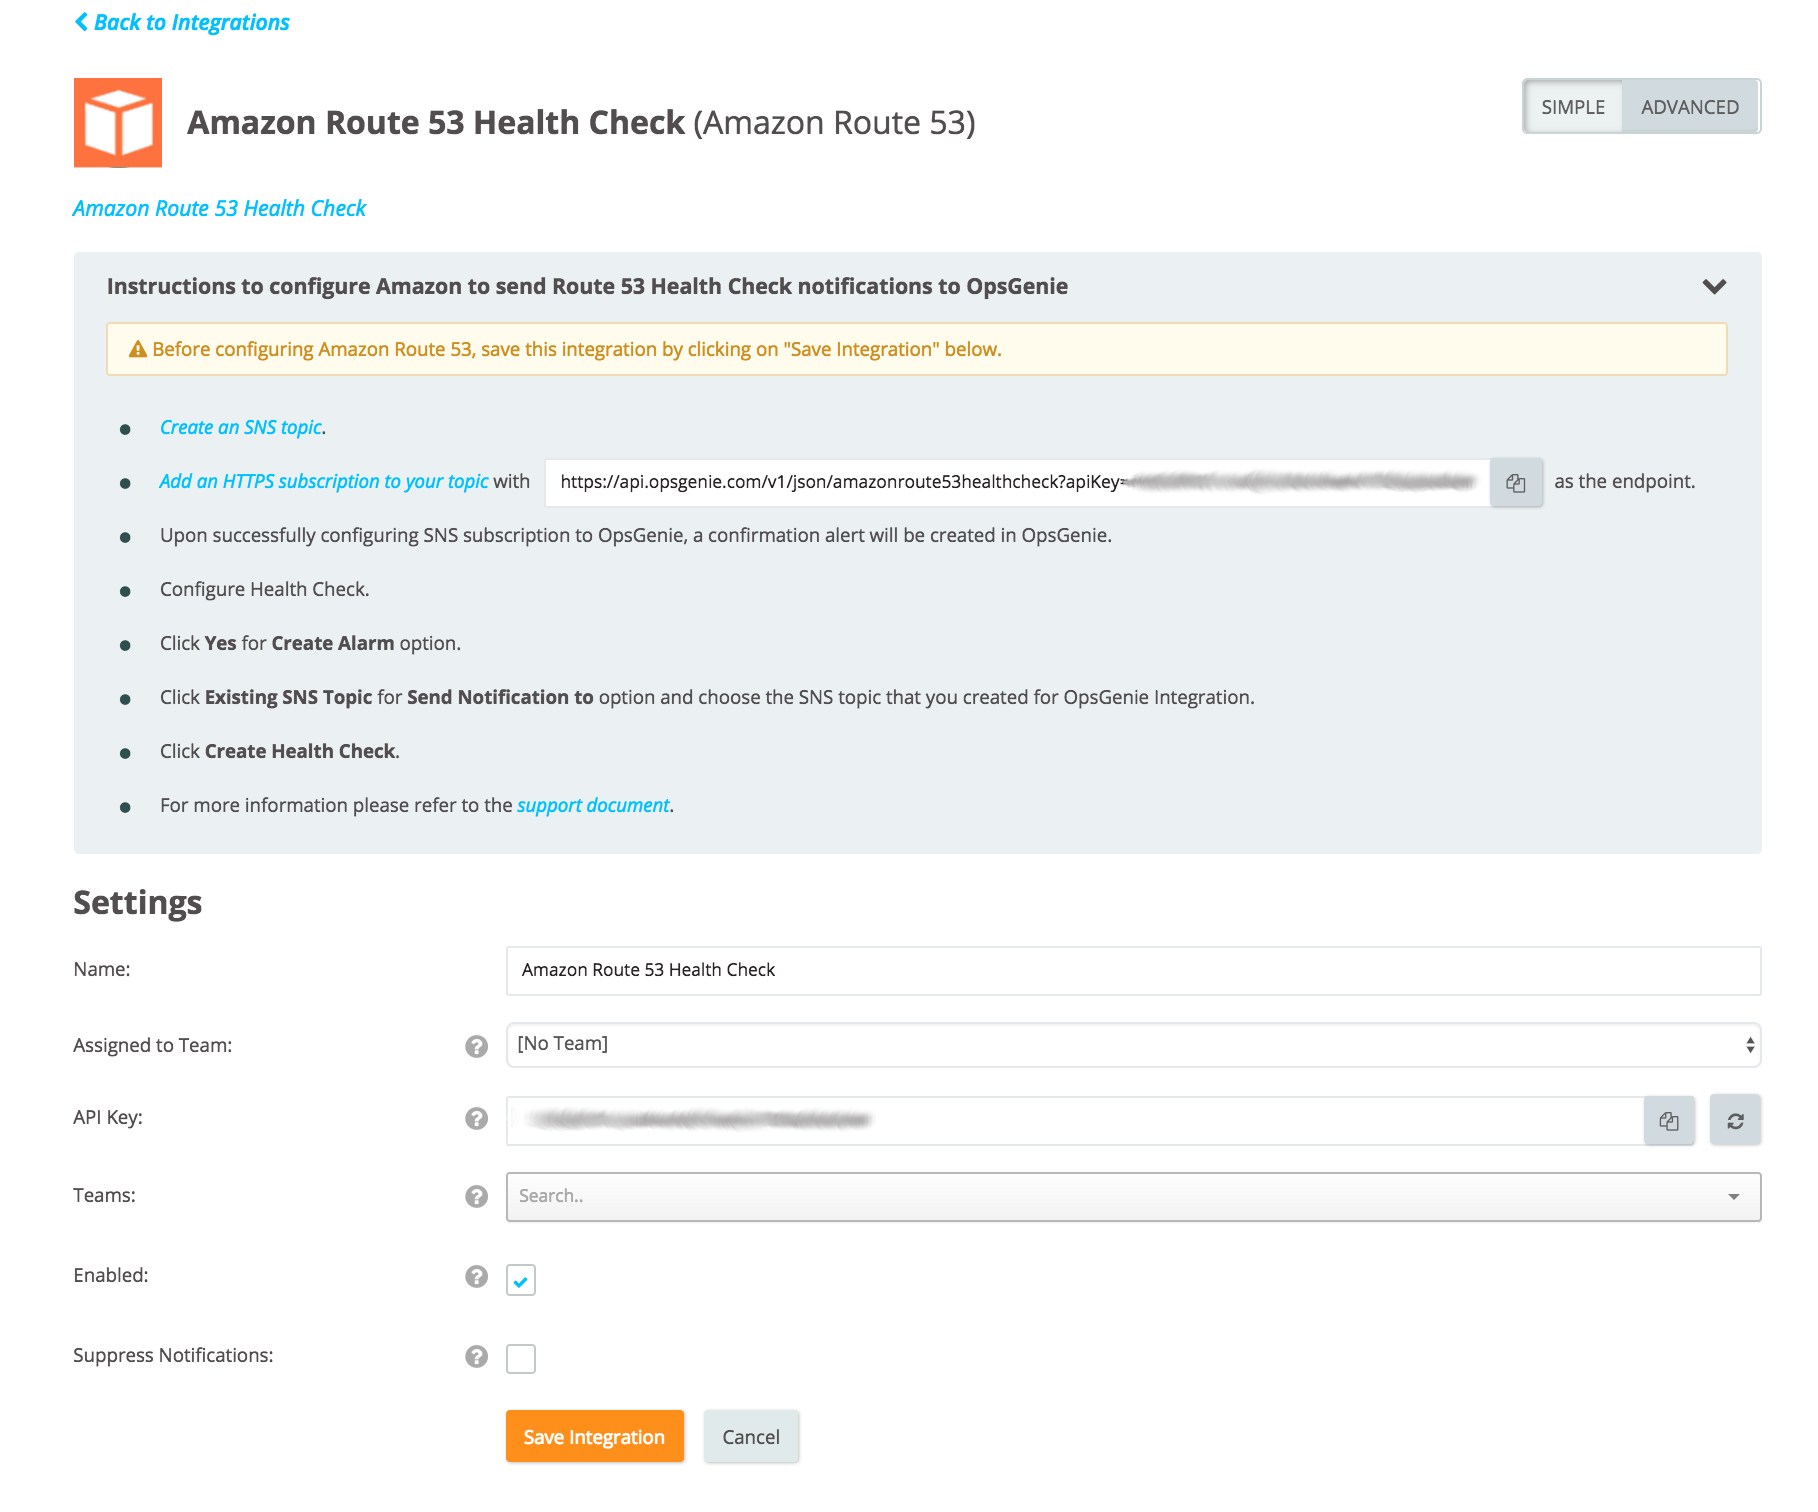 Amazon route 53 Health Check integration